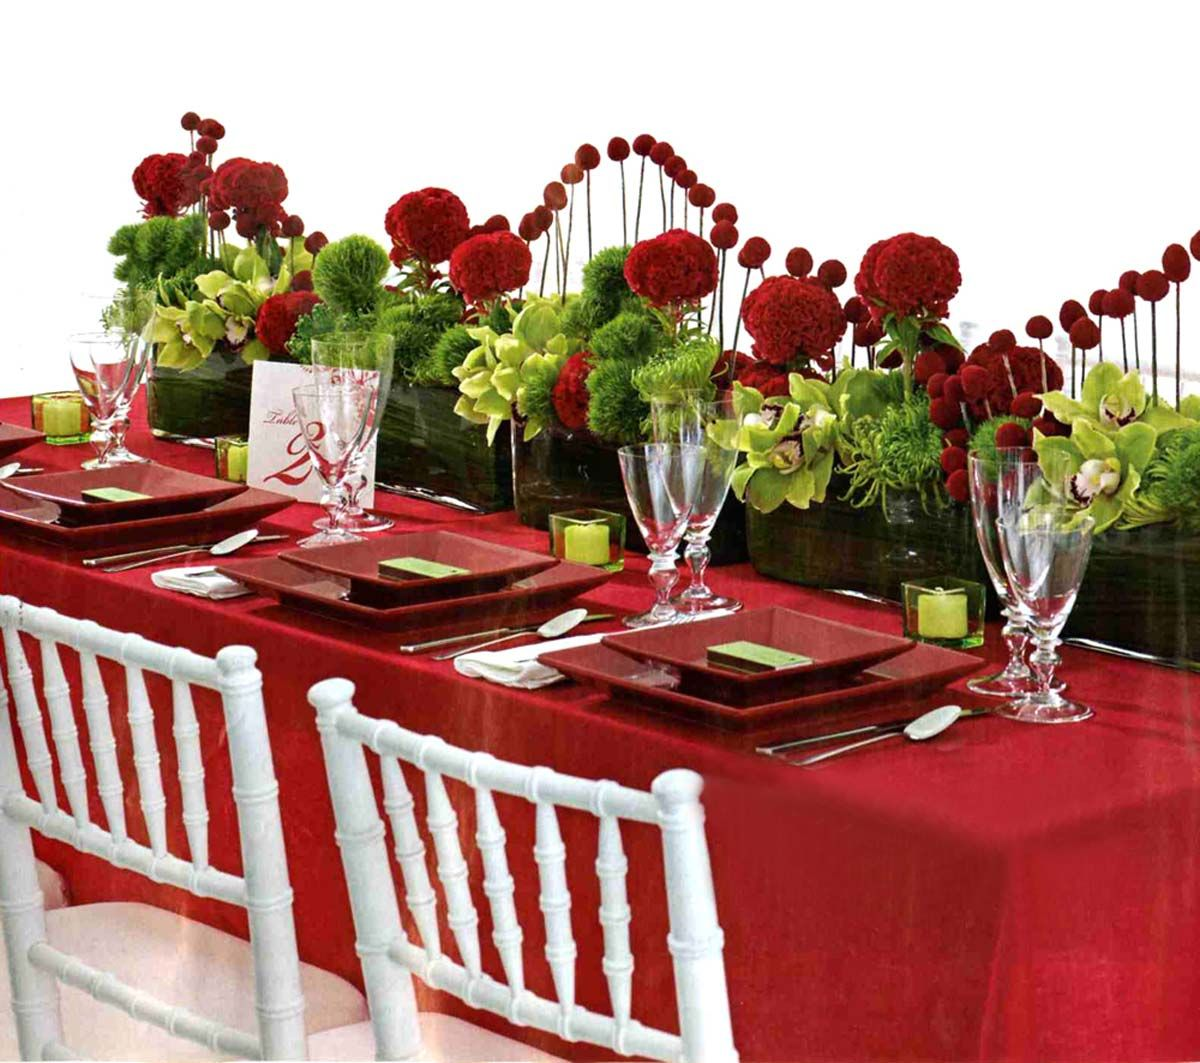 Lovely Valentines Table Decoration Ideas With Cute Red Table Cloth And  Simple Green Candle Lighting For Valentine Table Decoration Design Ideas